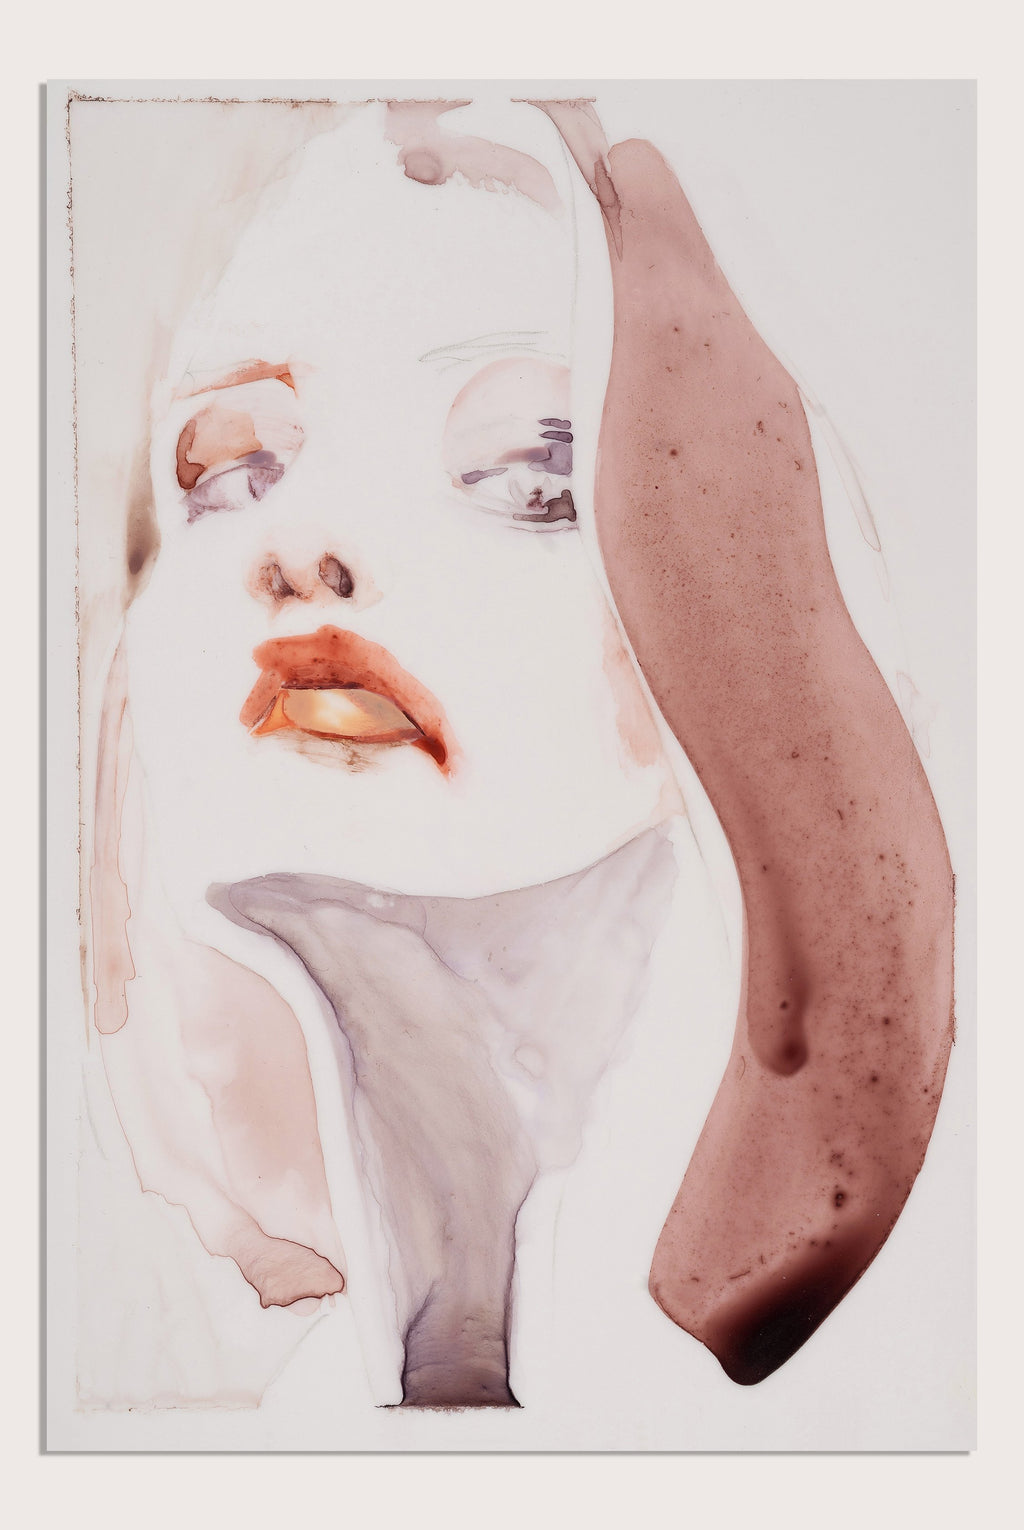 'Surface IV', a figurative painting on translucent paper by woman artist Alex Roberts